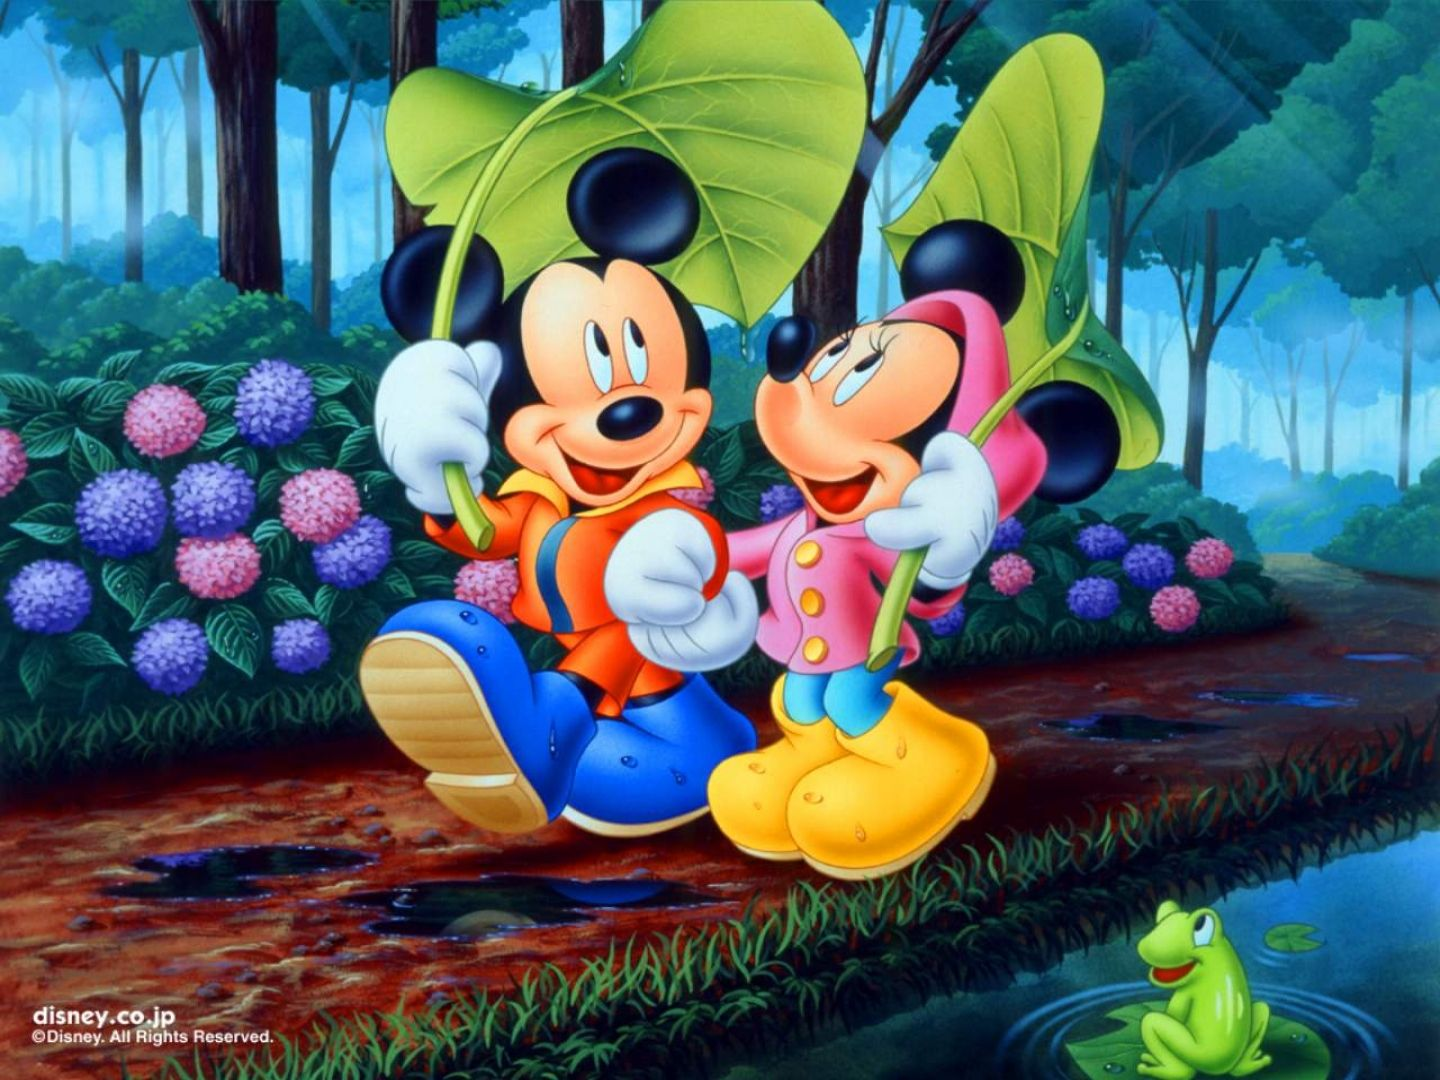 Mickey minnie imagenes mickey y minnie enamorados 1440x900 mickey minnie imagenes mickey y minnie enamorados 1440x900 caricaturas disney thecheapjerseys Image collections